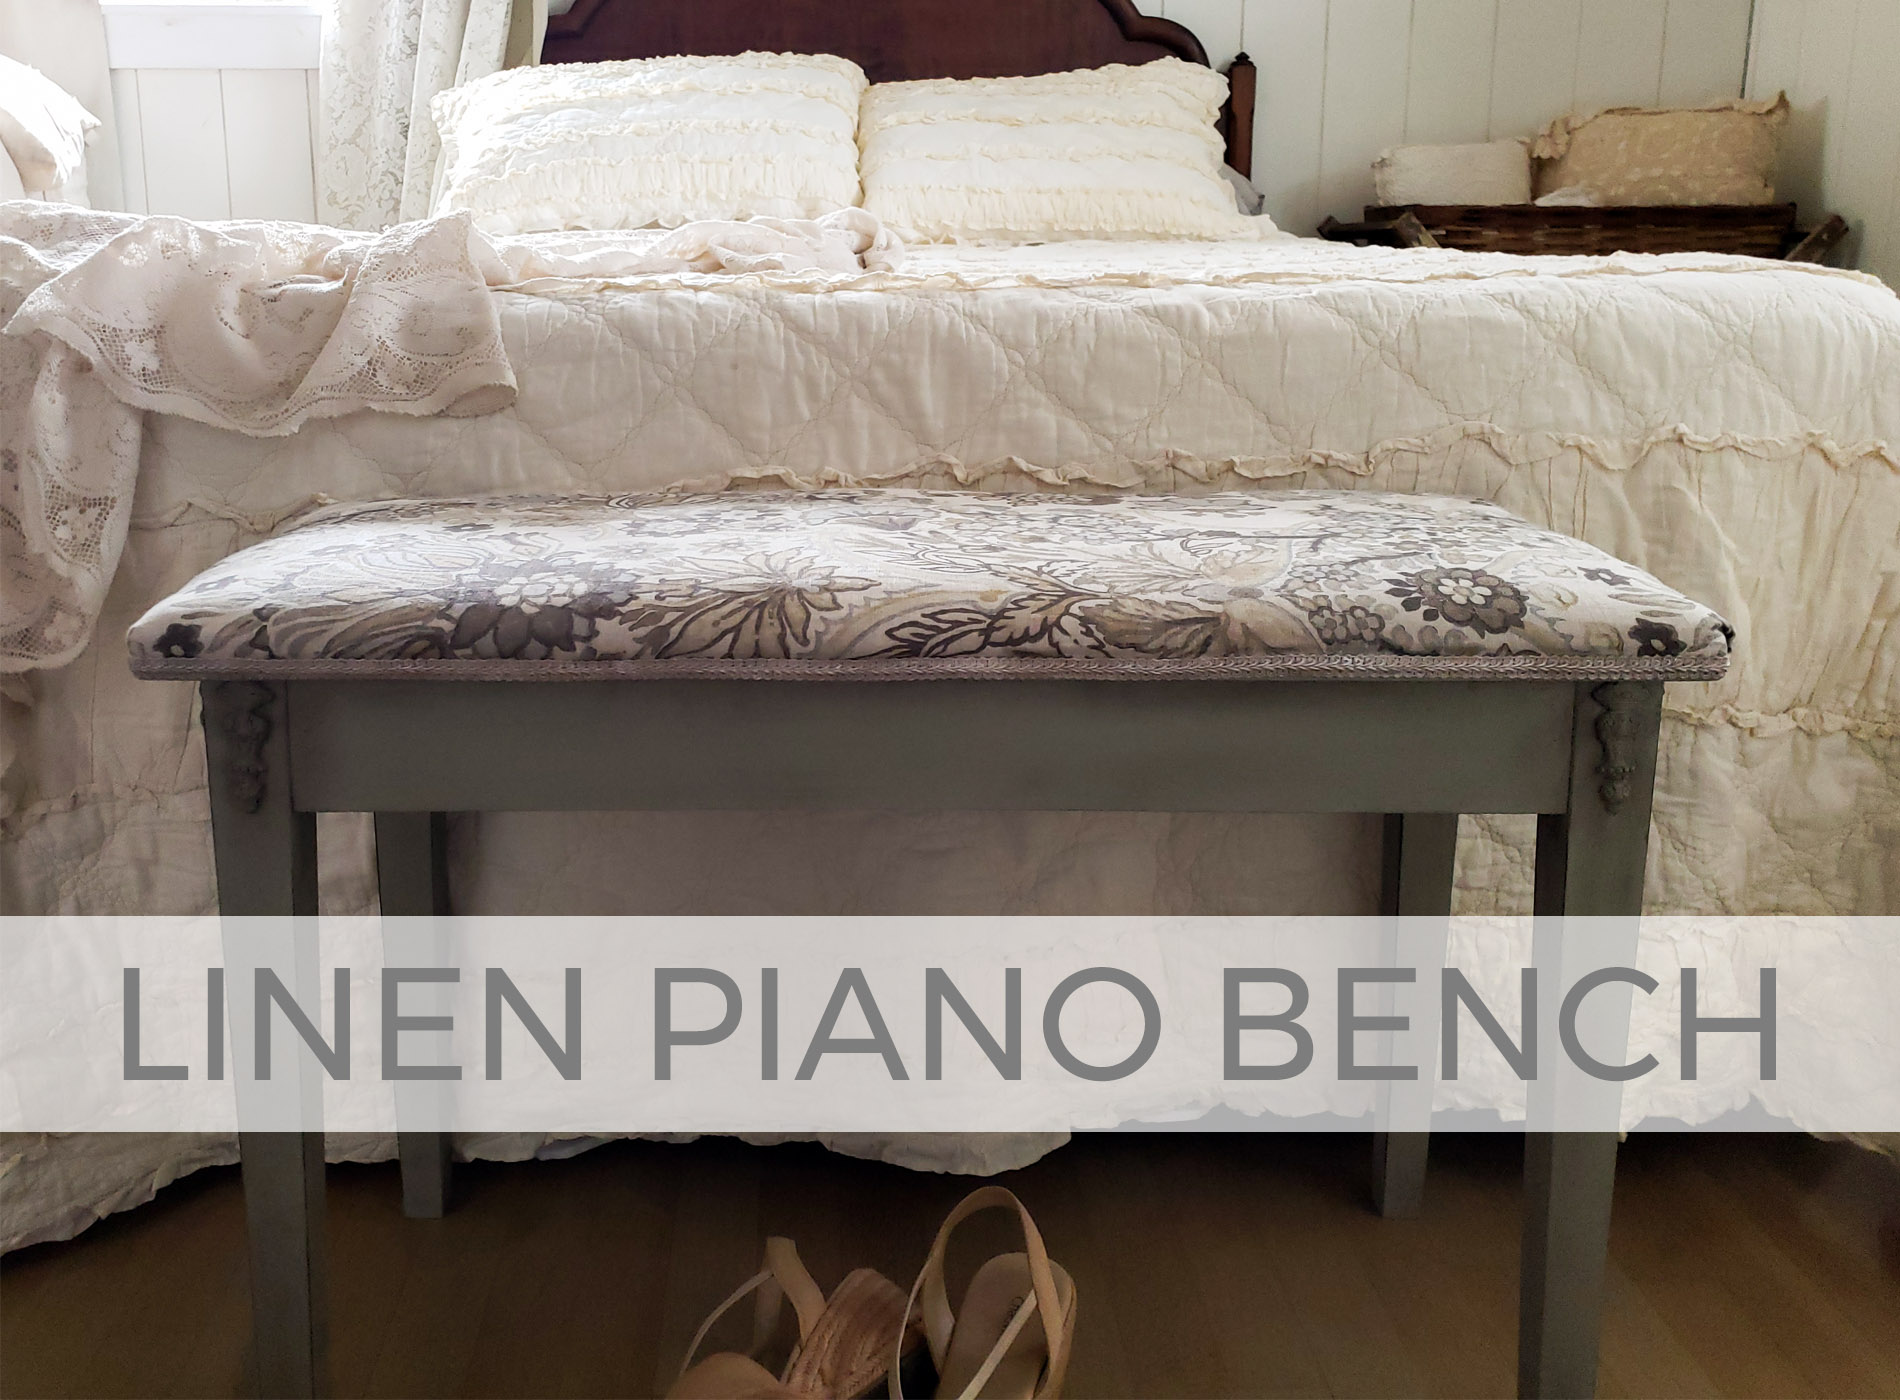 Upholstered Linen Piano Bench by Larissa of Prodigal Pieces | prodigalpieces.com #prodigalpieces